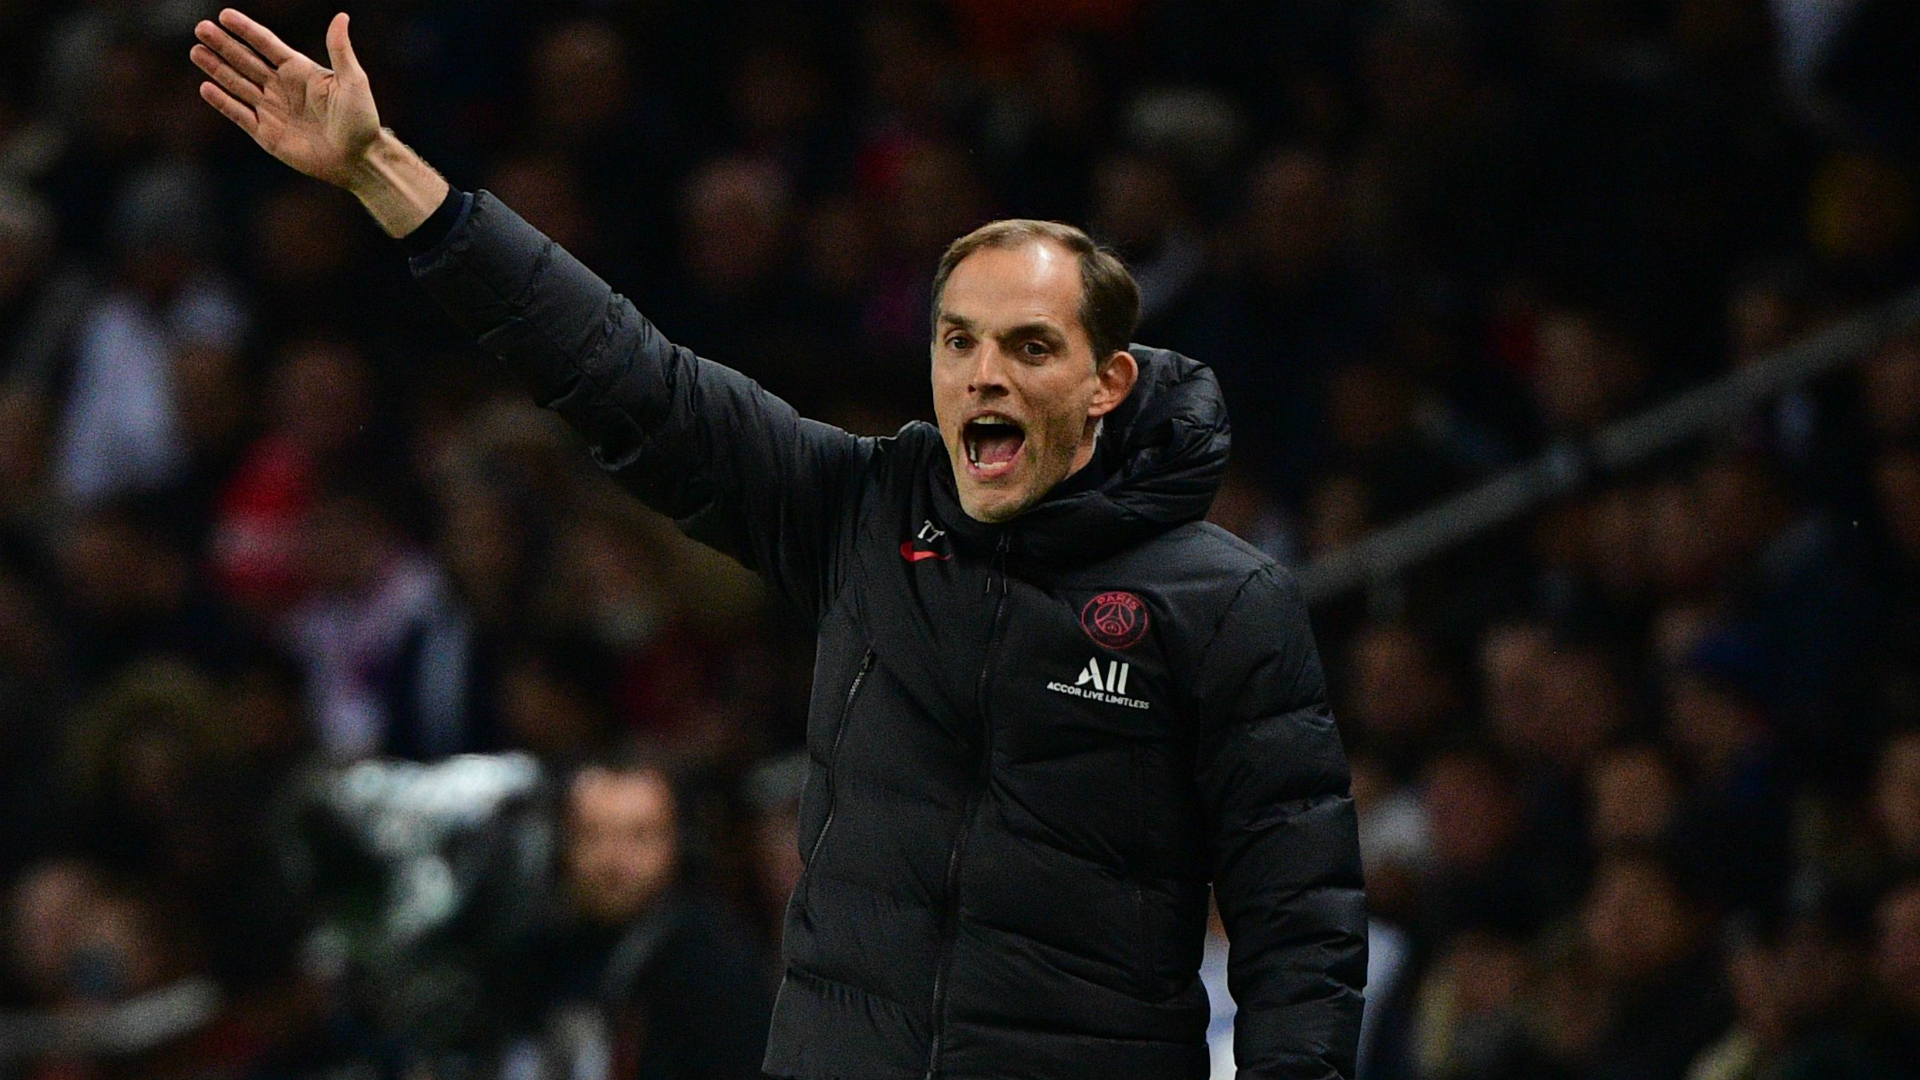 Tuchel prospered at PSG - can he succeed at Stamford Bridge?